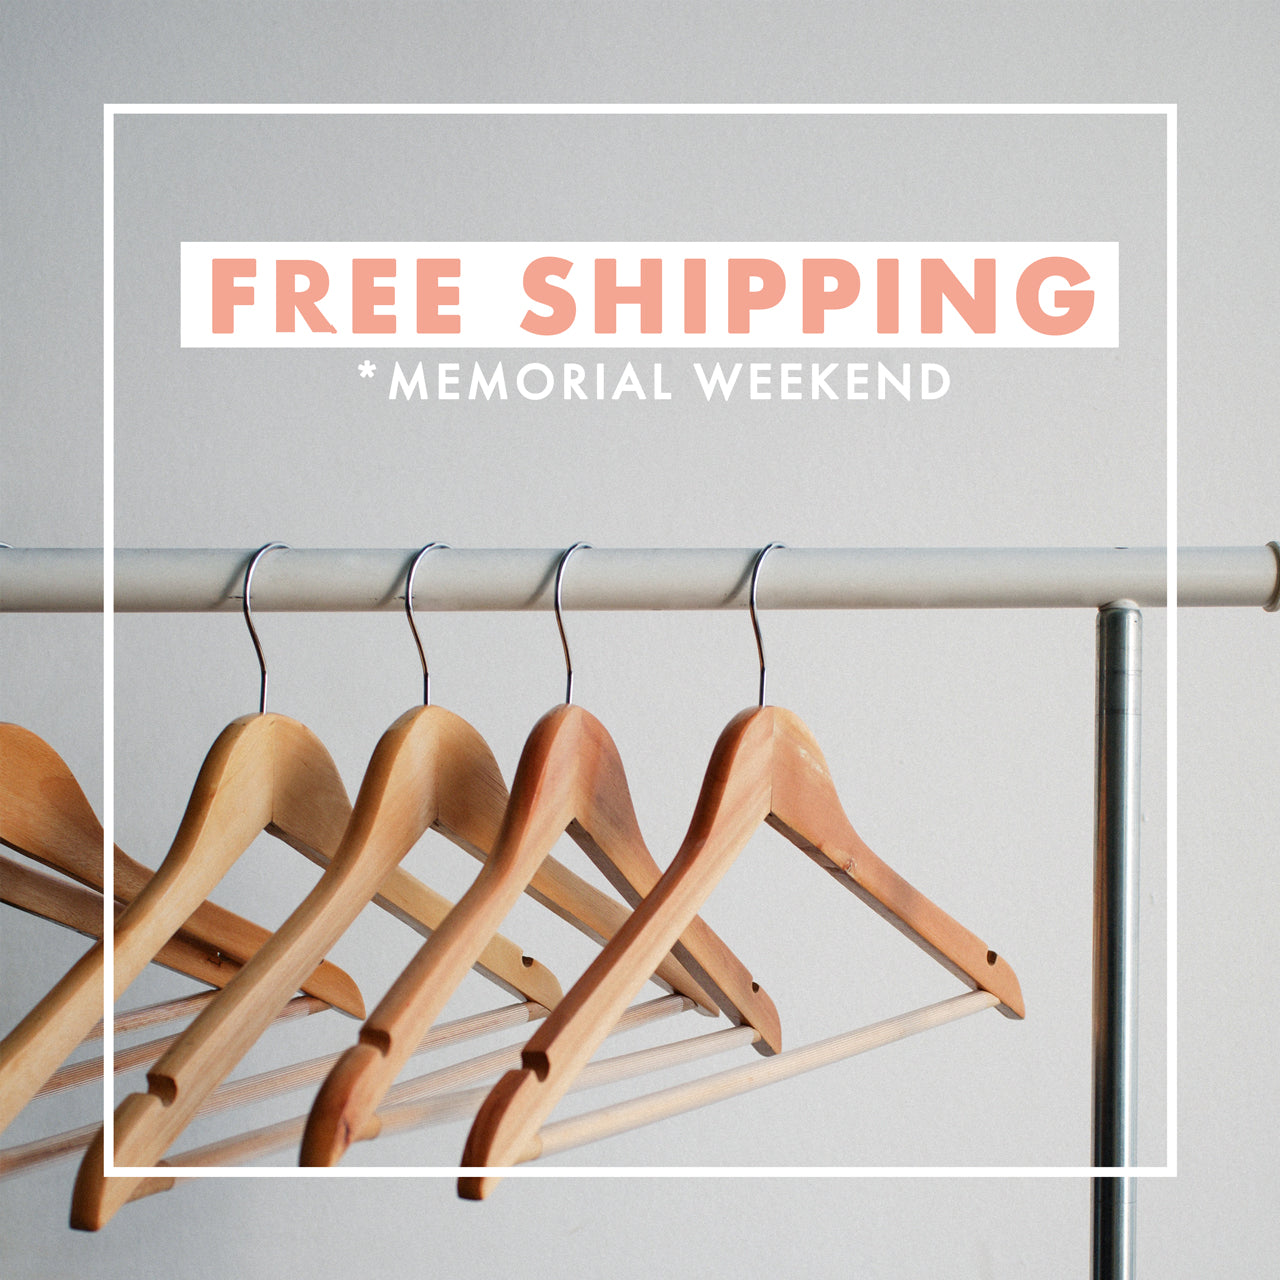 Free shipping Memorial weekend